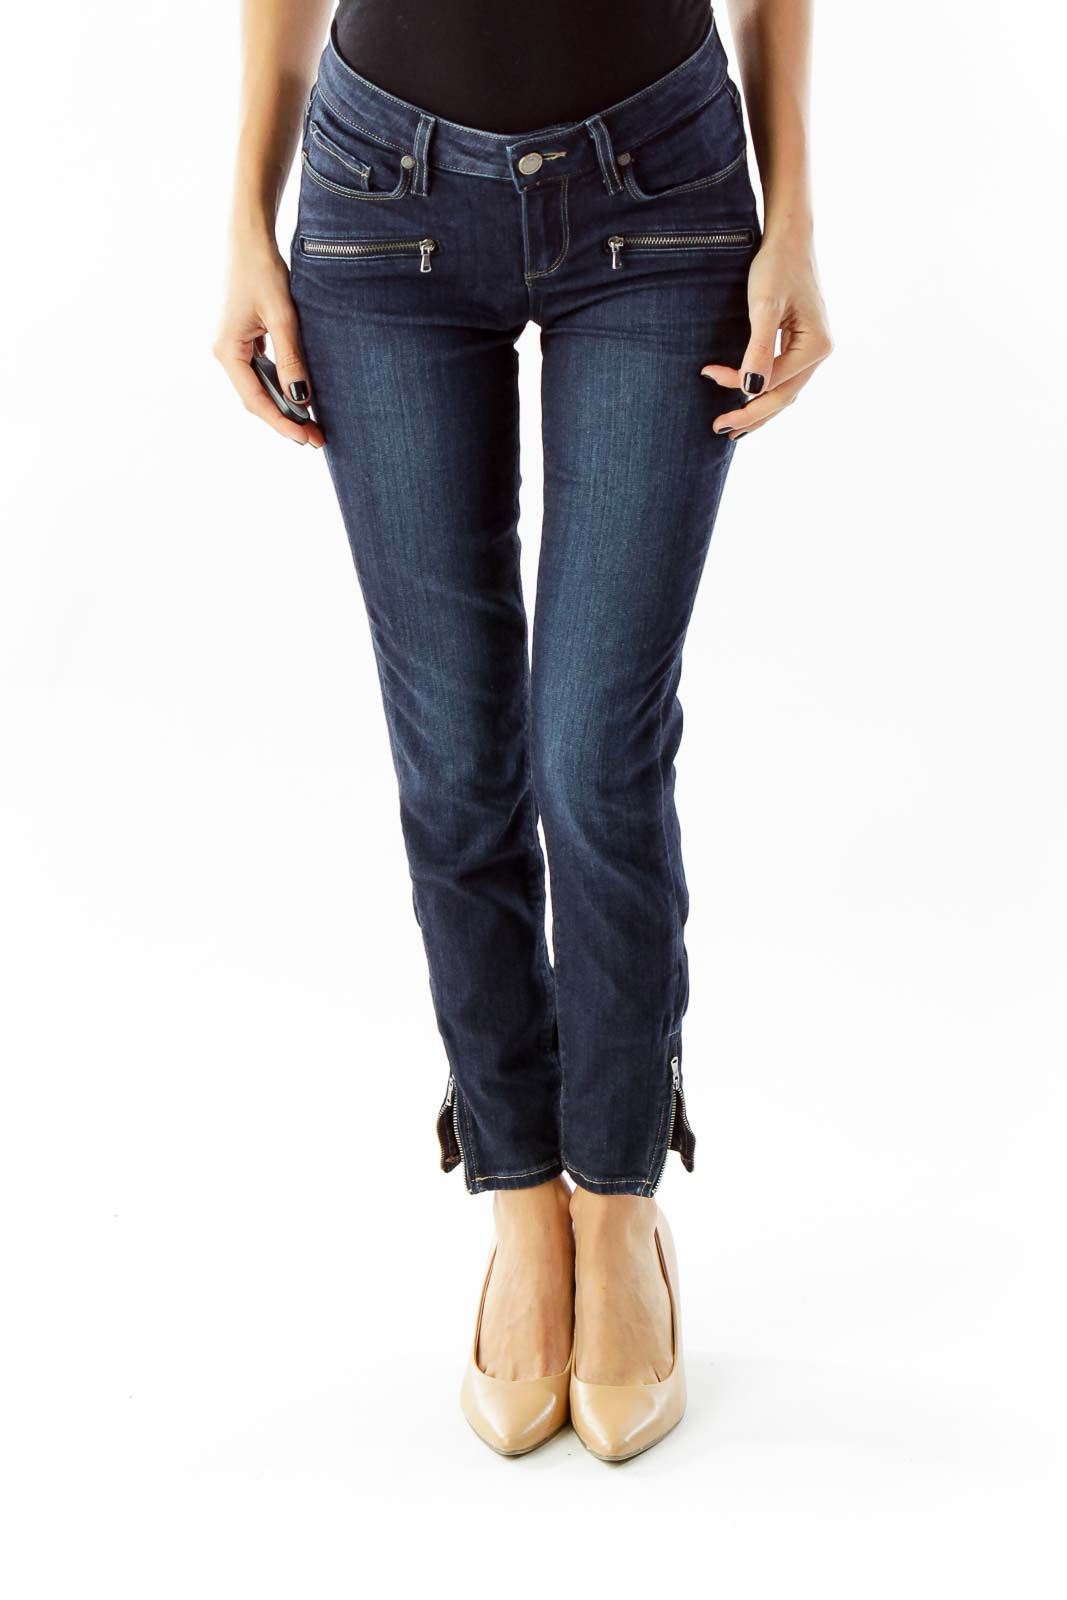 Navy Zippered Skinny Jeans